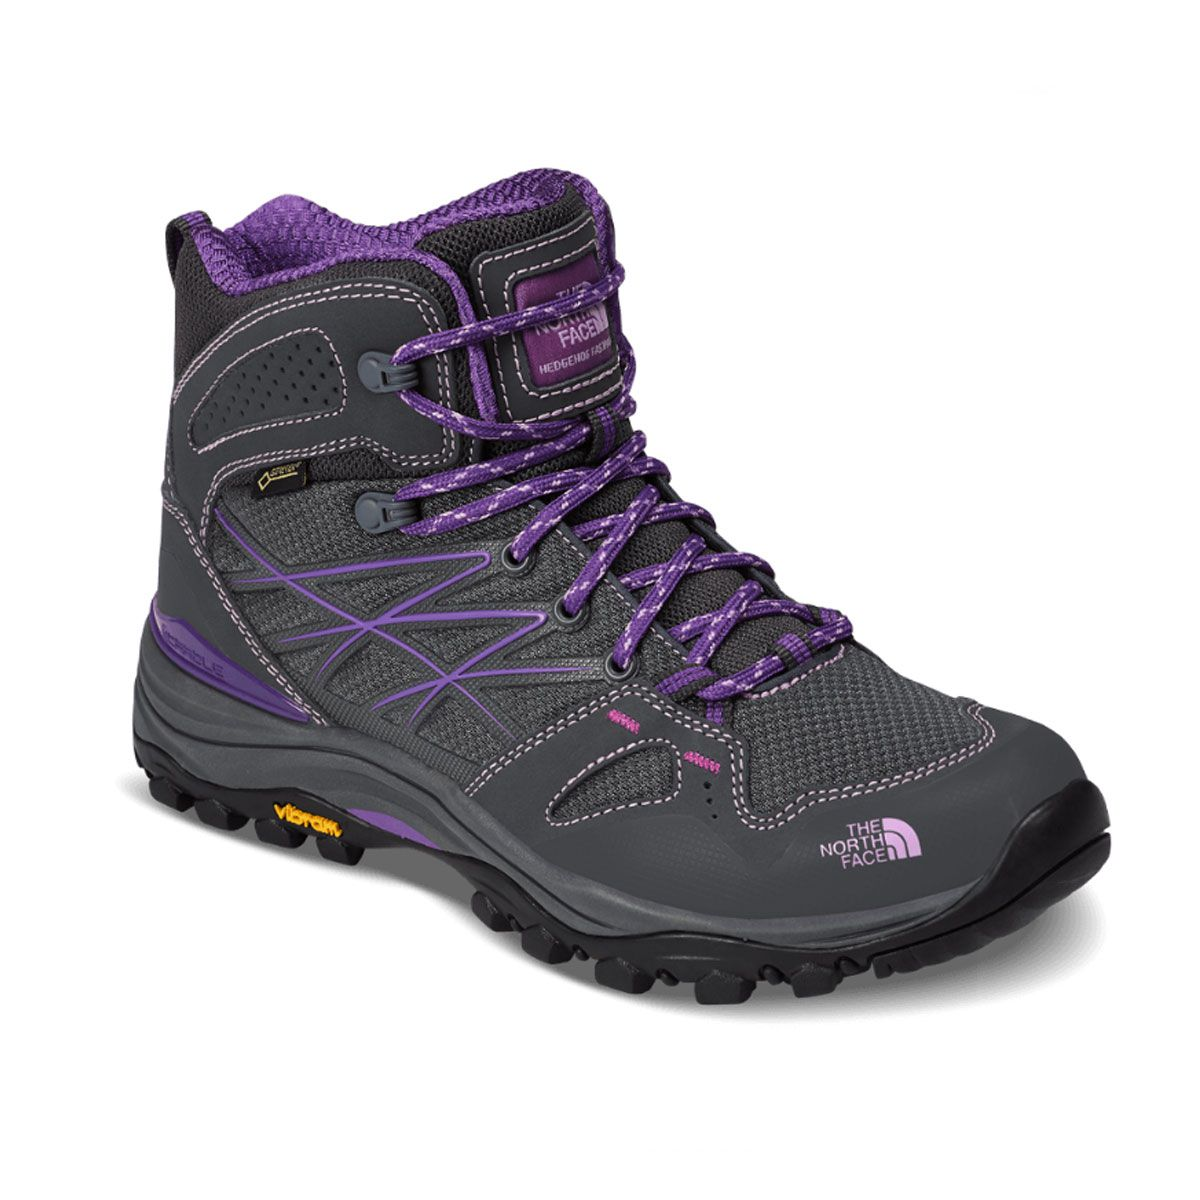 Bota Feminina Adulto Hedgehog FastPack Mid GTX TCR The North Face Cinza